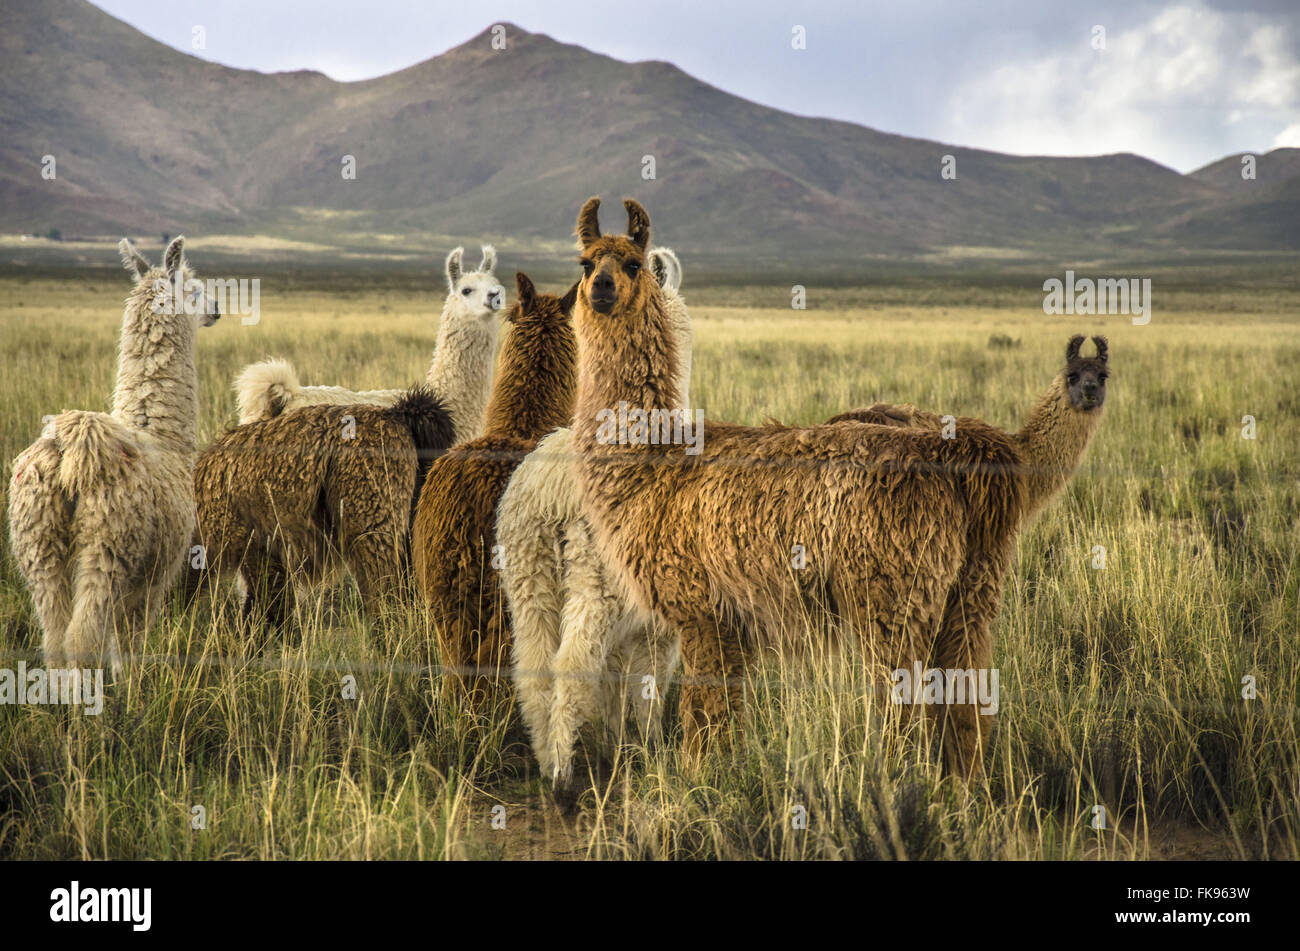 Llamas in the field near the Ruta Nacional 40, Provincia de Jujuy - Stock Image